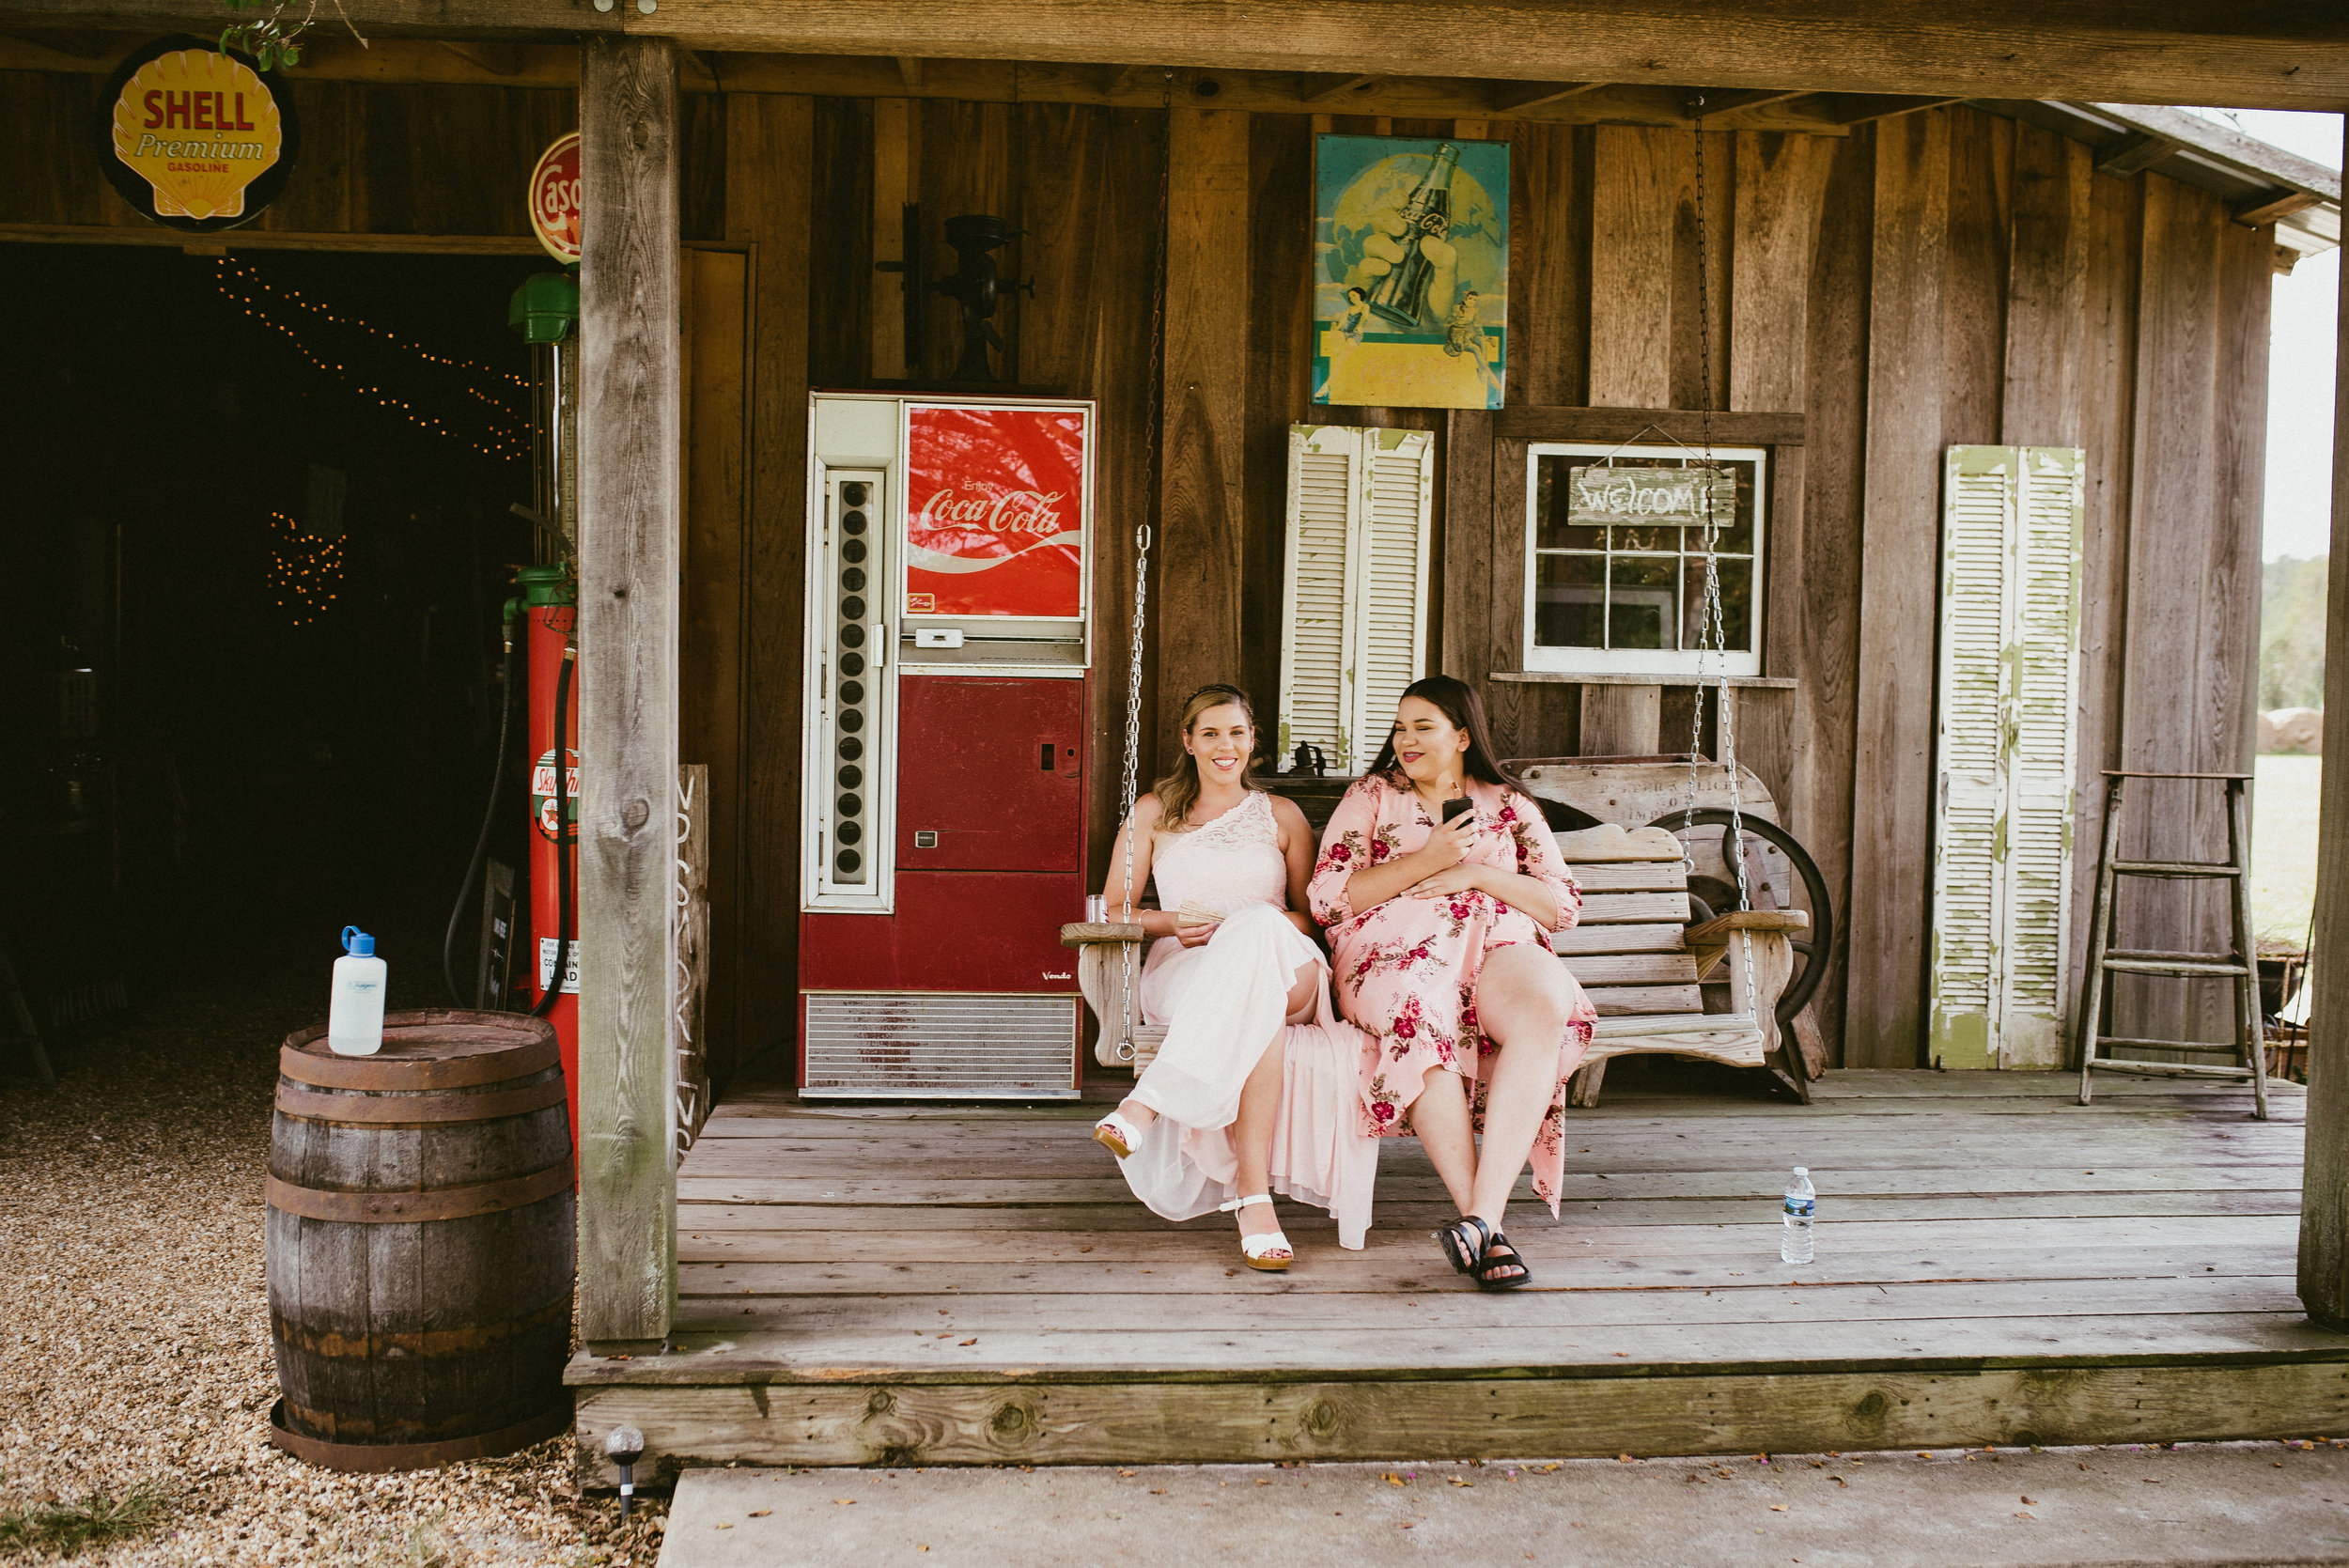 fayetteville wedding - fayetteville wedding photographer - thompson farm wedding